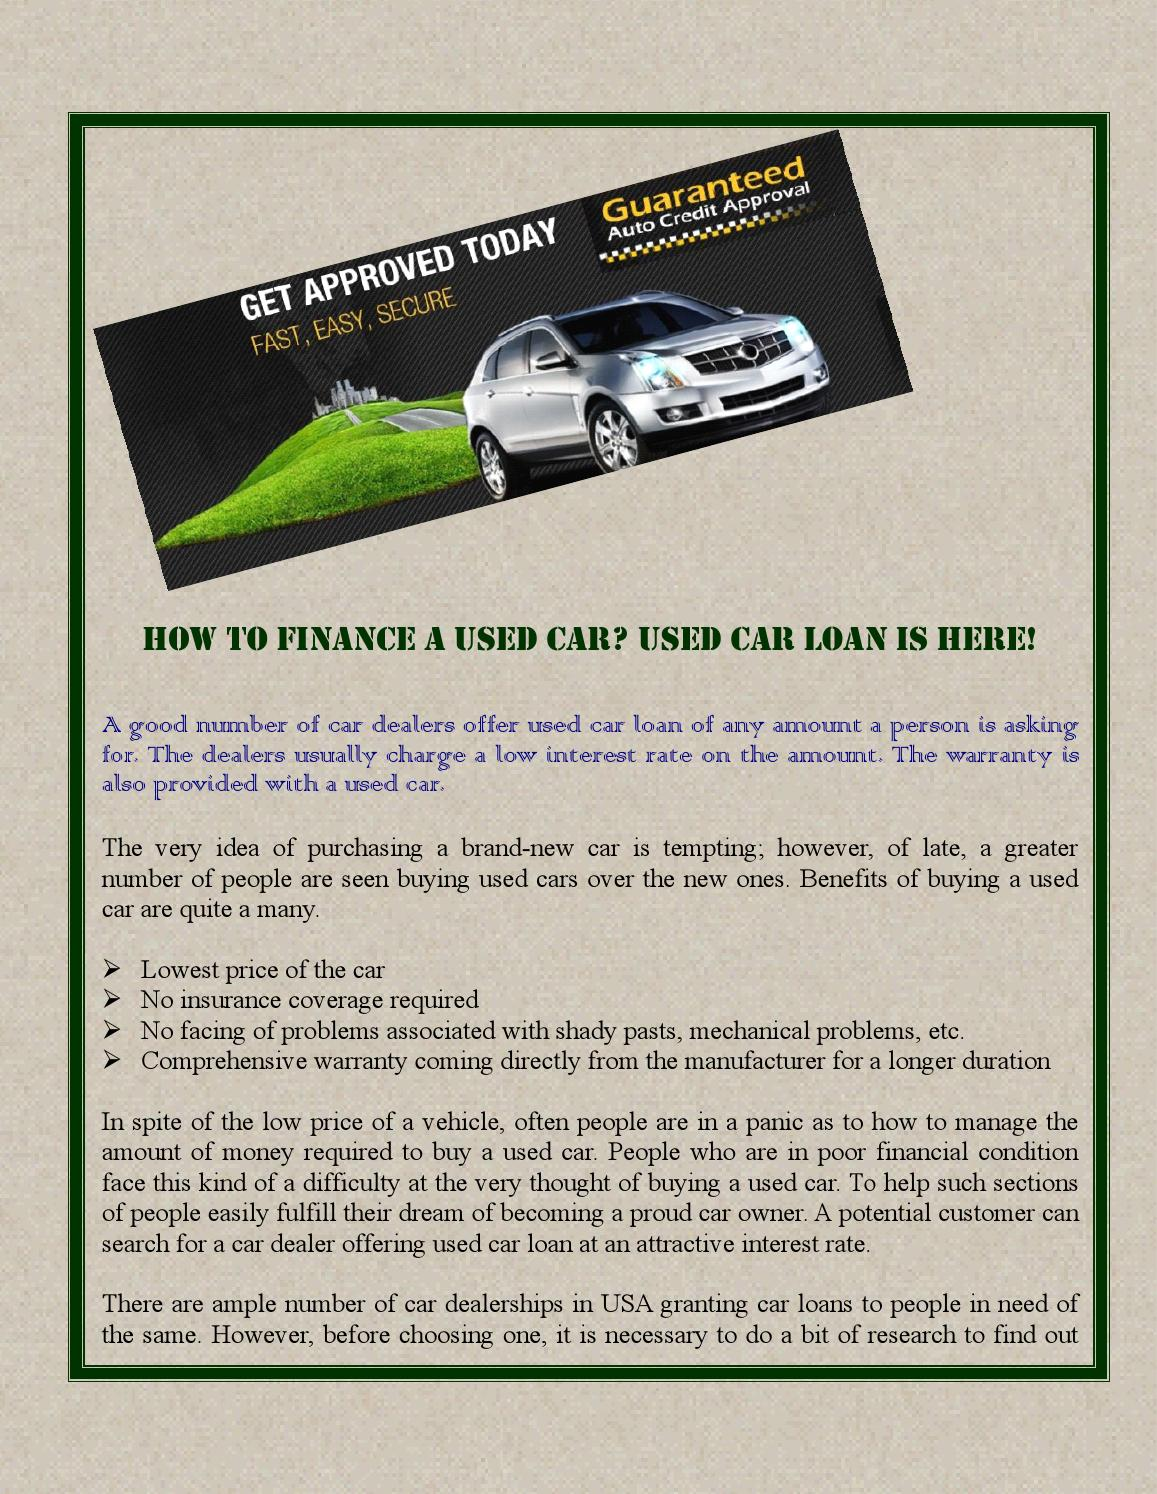 Guaranteed Auto Loan Dealerships >> How To Finance A Used Car Used Car Loan Is Here By